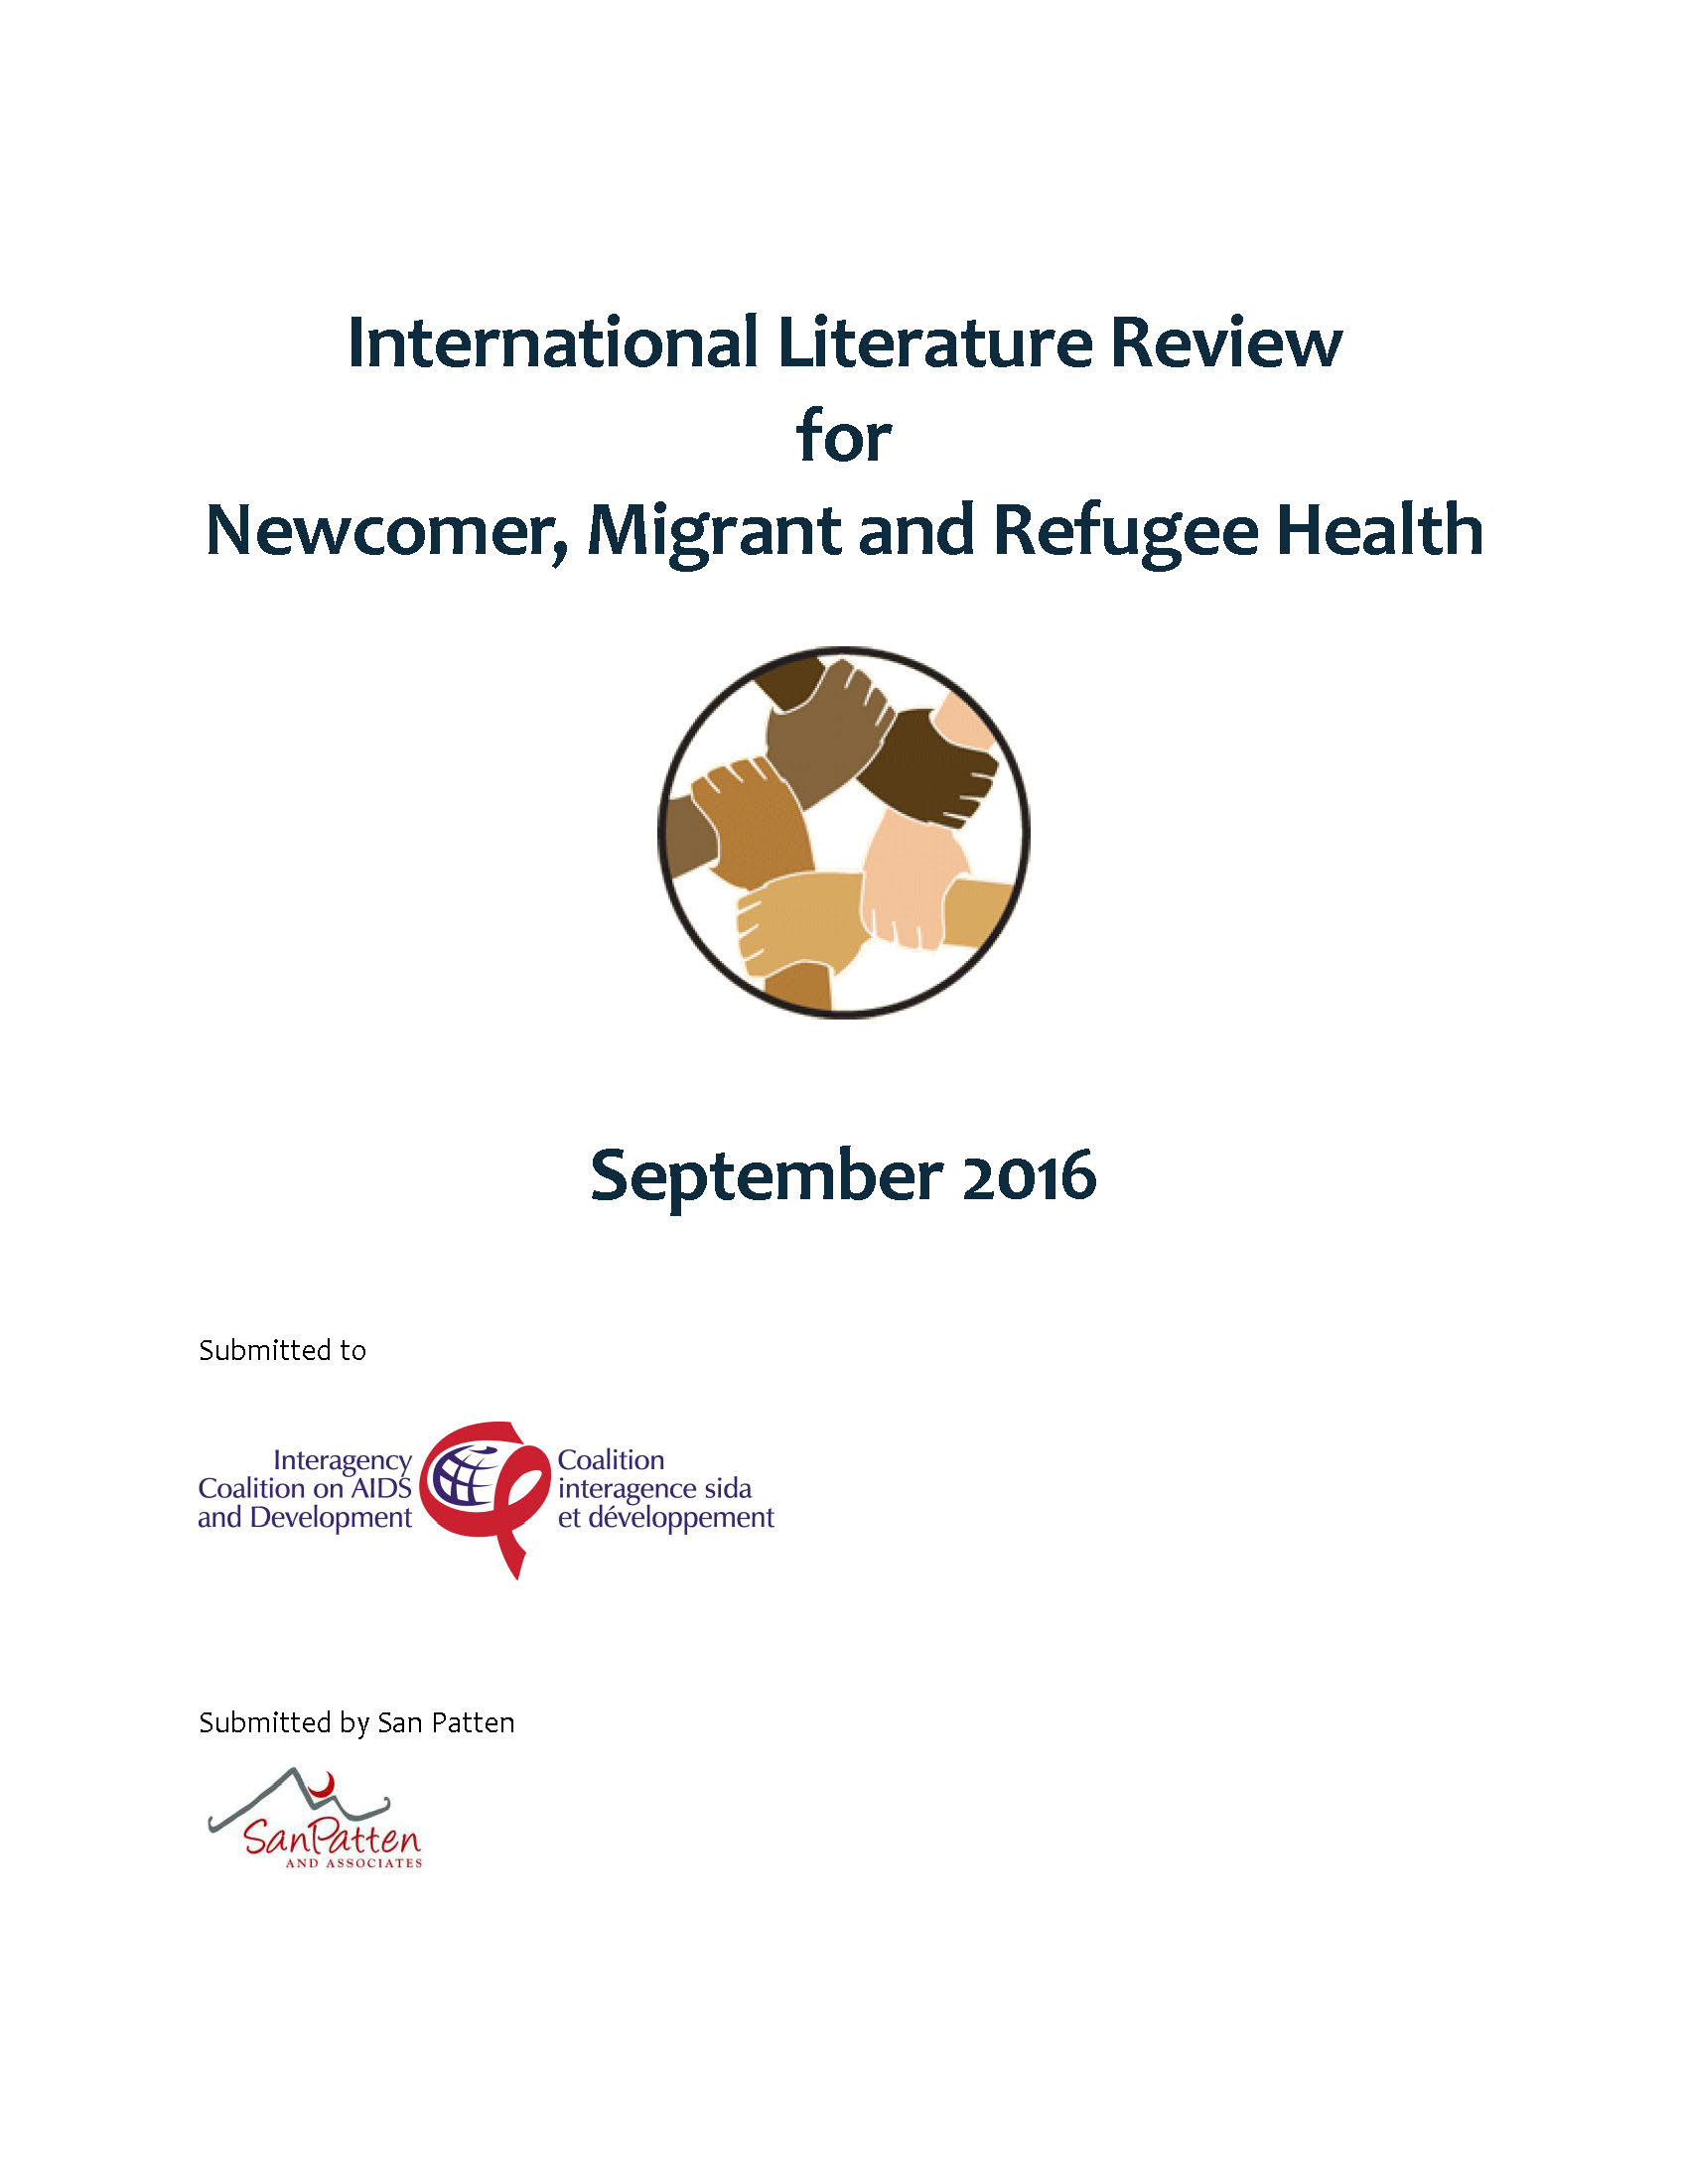 International Literature Review for Newcomer, Migrant and ...